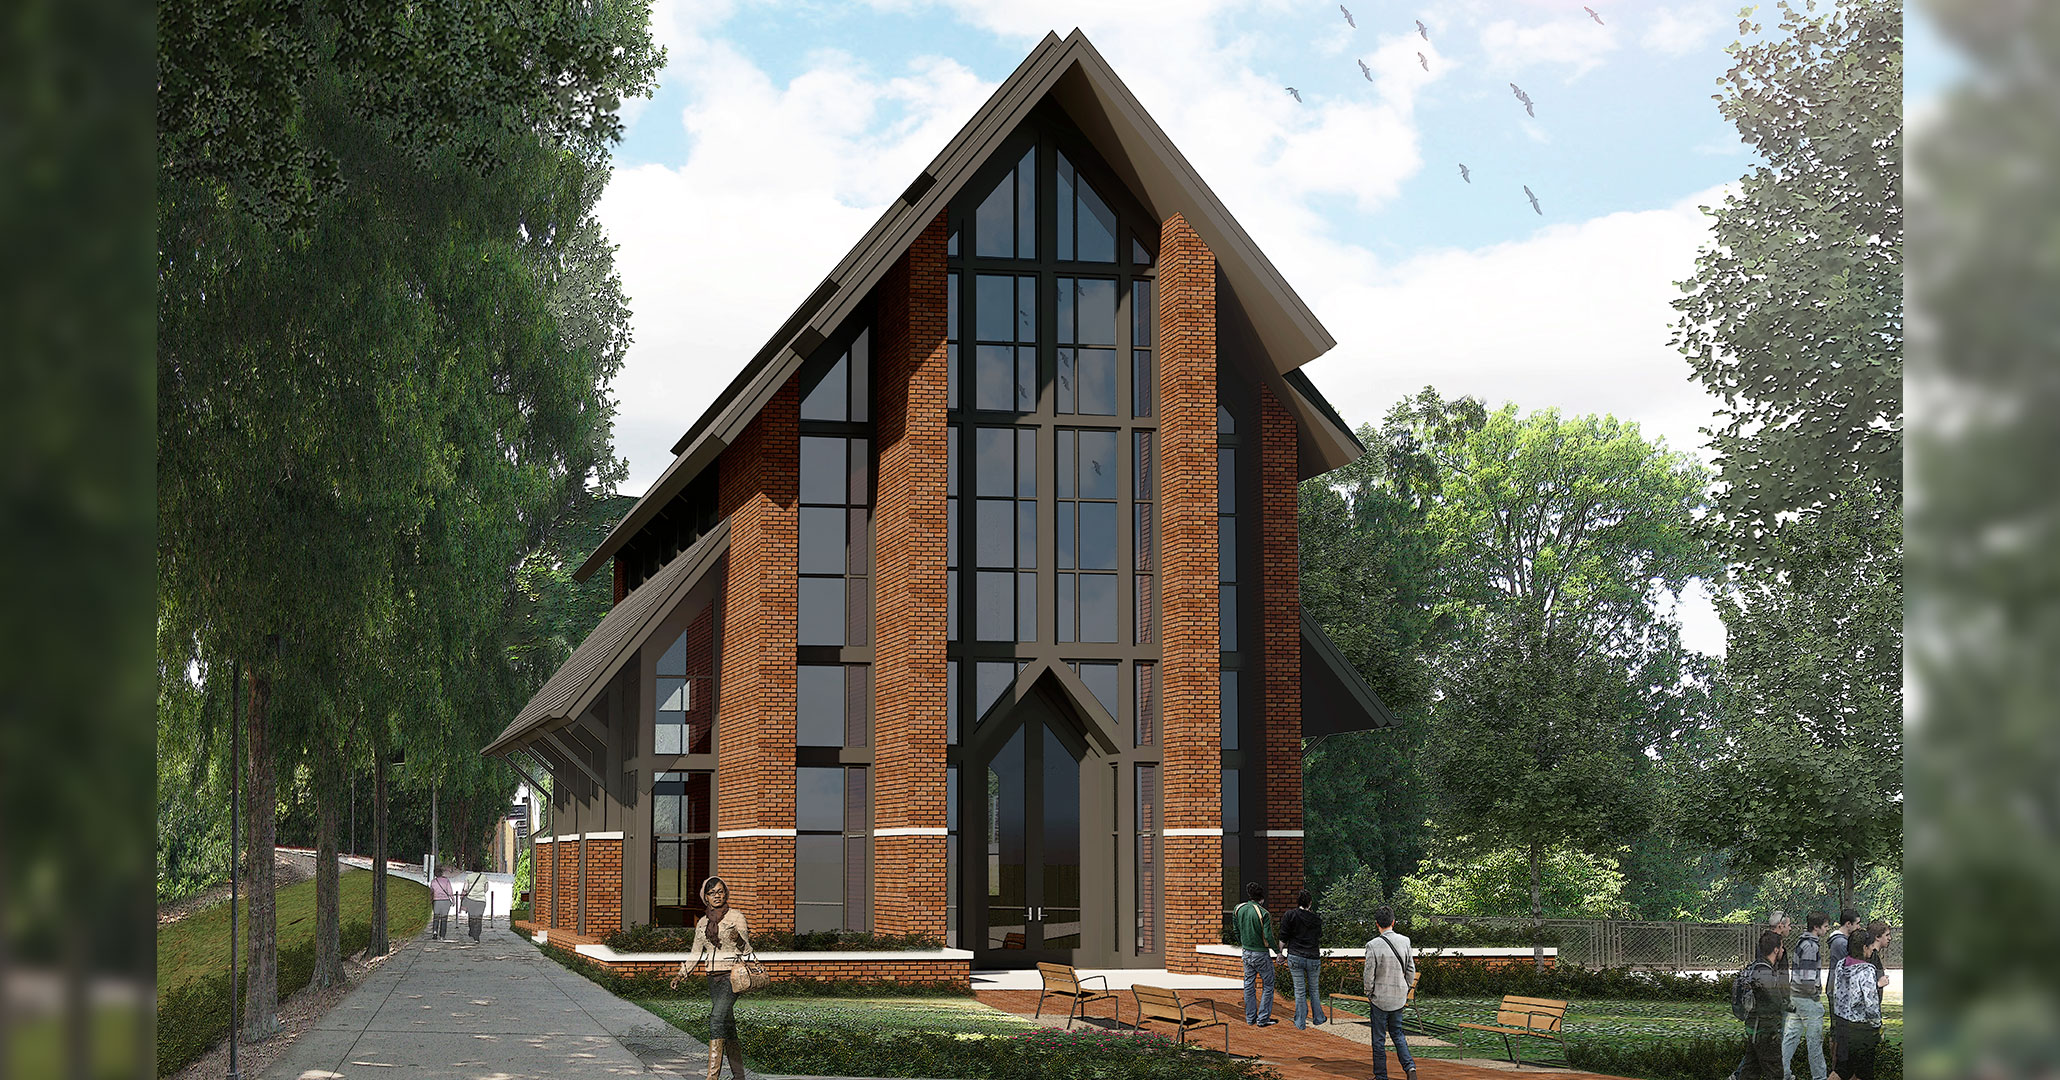 Clemson University is currently working with Boudreaux architects to design and build the Samuel J Cadden Chapel on campus.